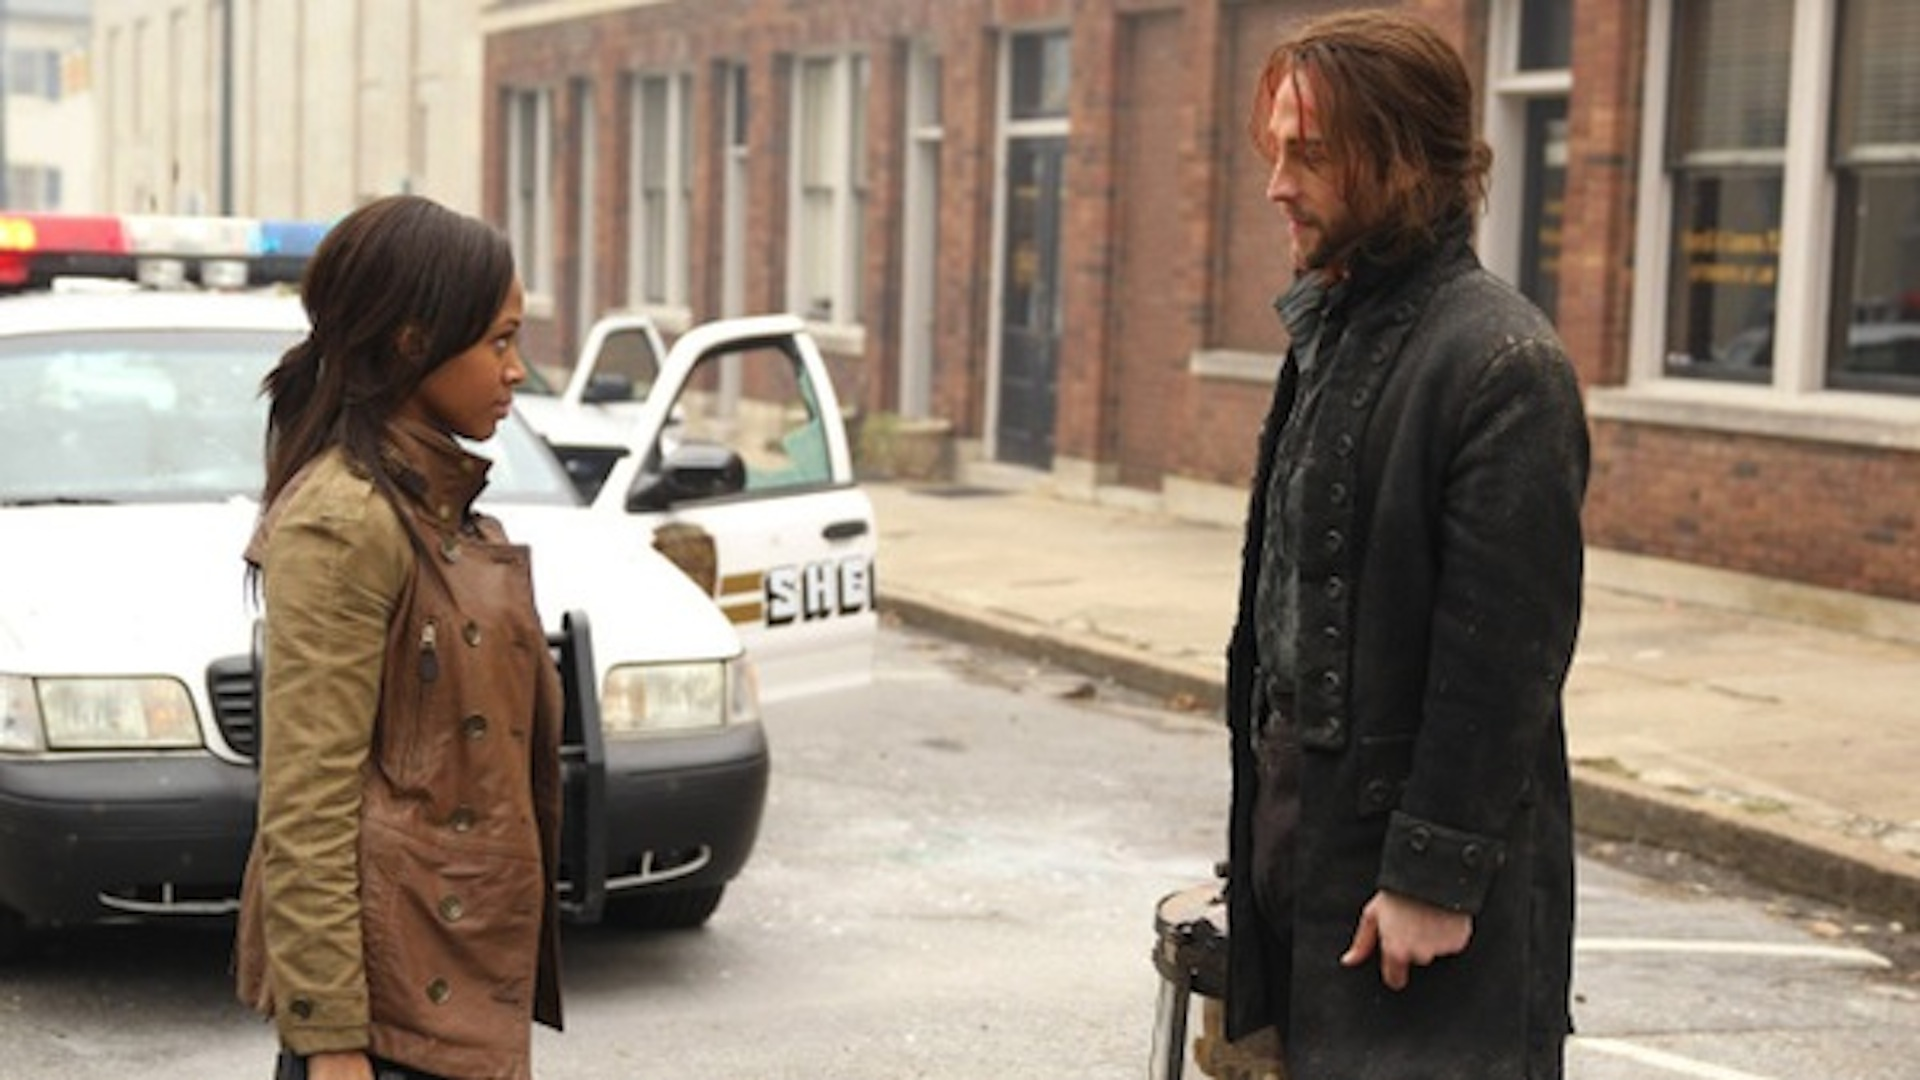 Ichabod and Abbie share a moment on Sleepy Hollow